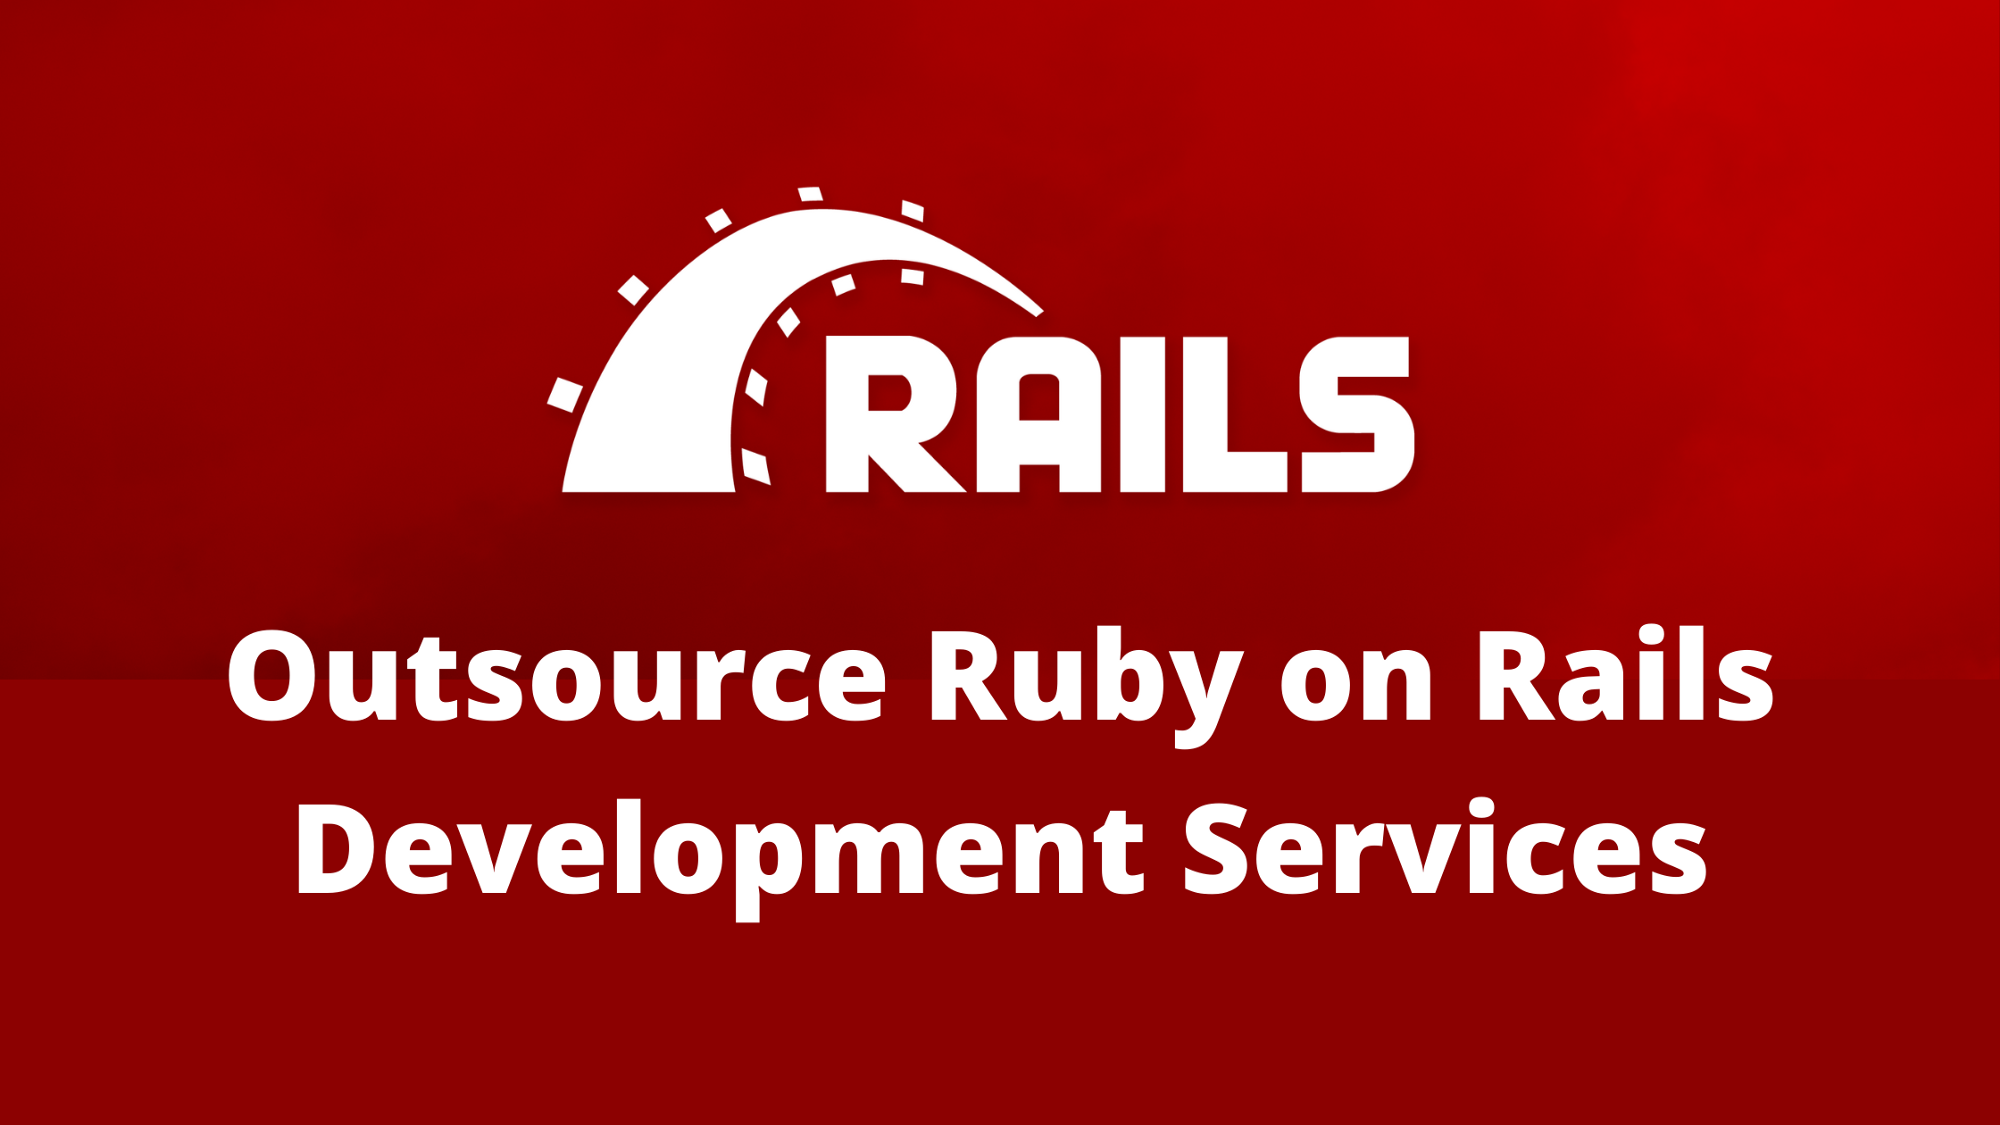 Outsource Ruby on Rails Development Services